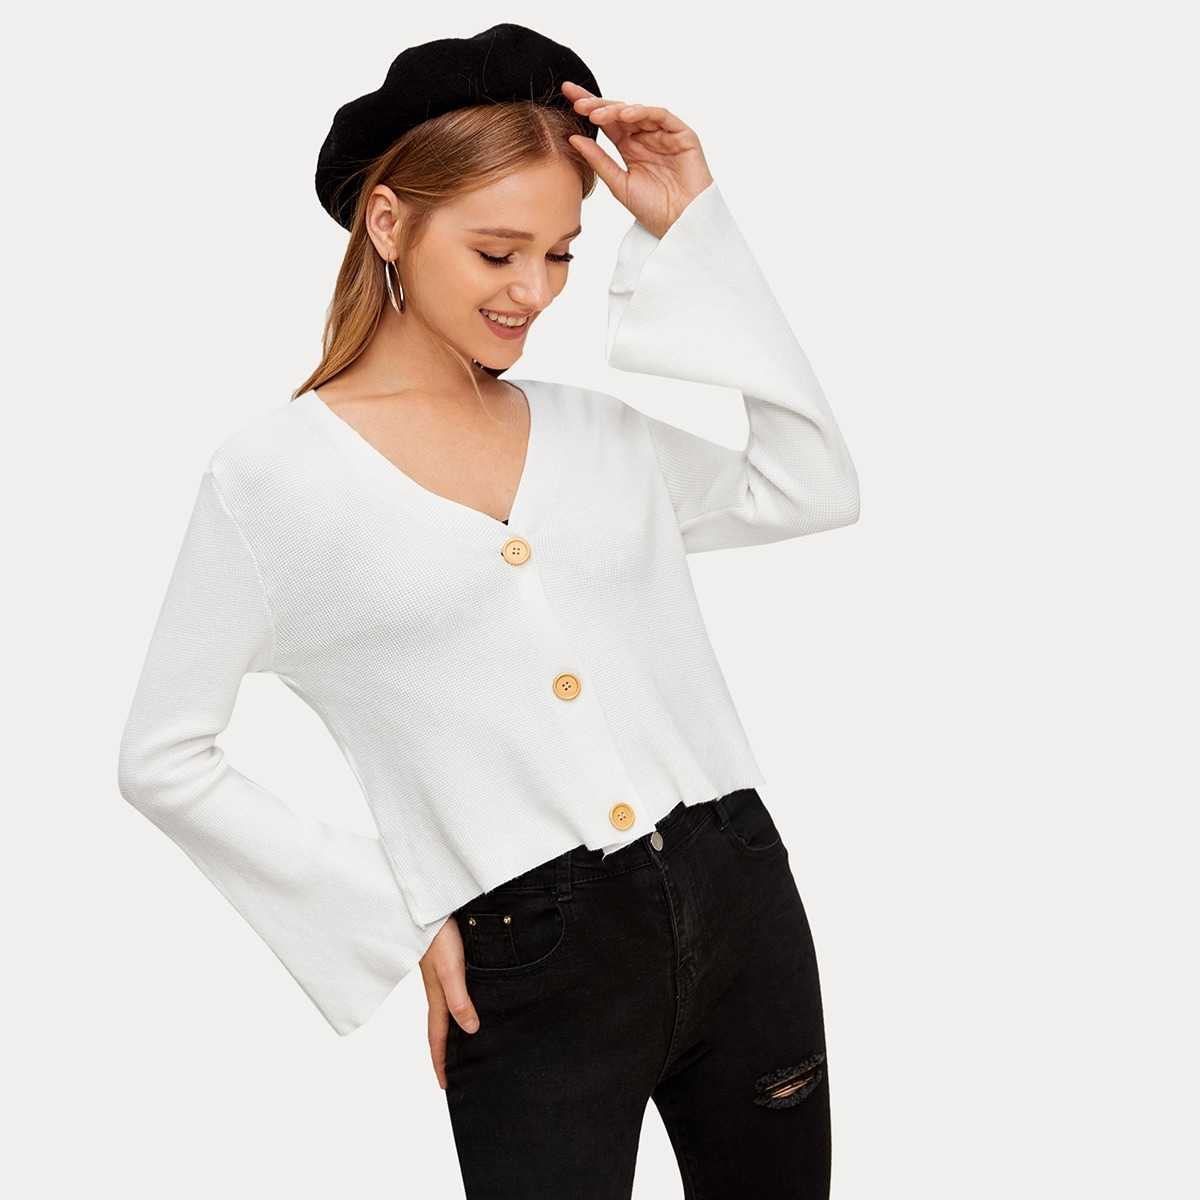 Solid Button Through Bell Sleeve Cardigan in White by ROMWE on GOOFASH